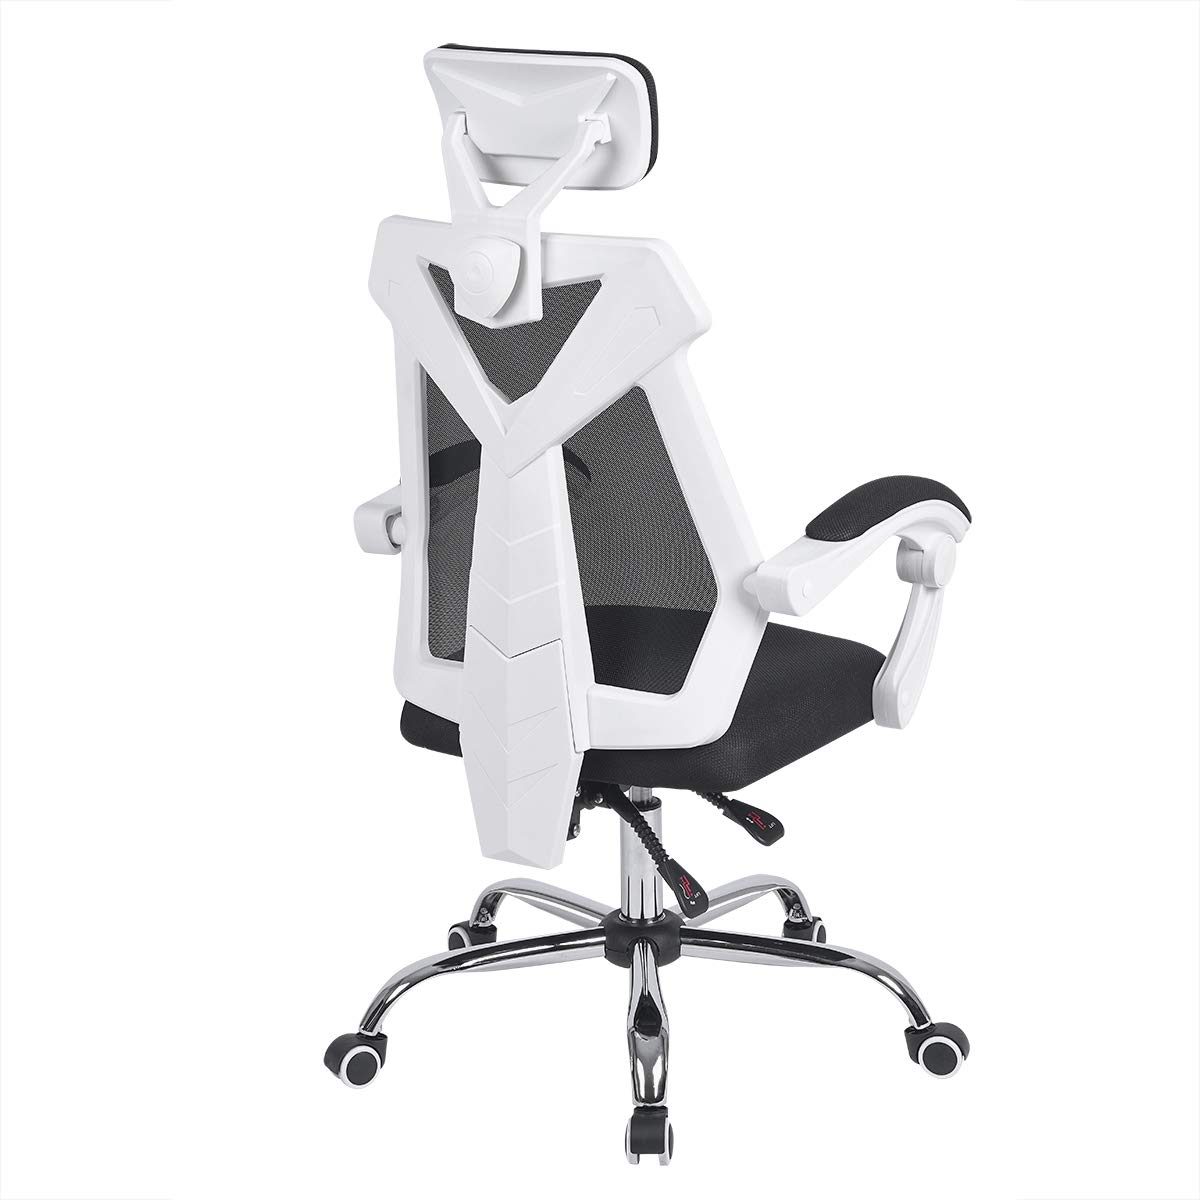 Incredible Auag Gaming Chair Racing Office Chair High Back Computer Desk Chair Pu Leather Gaming Chair Ergonomic Adjustable Swivel Gaming Chair White Camellatalisay Diy Chair Ideas Camellatalisaycom